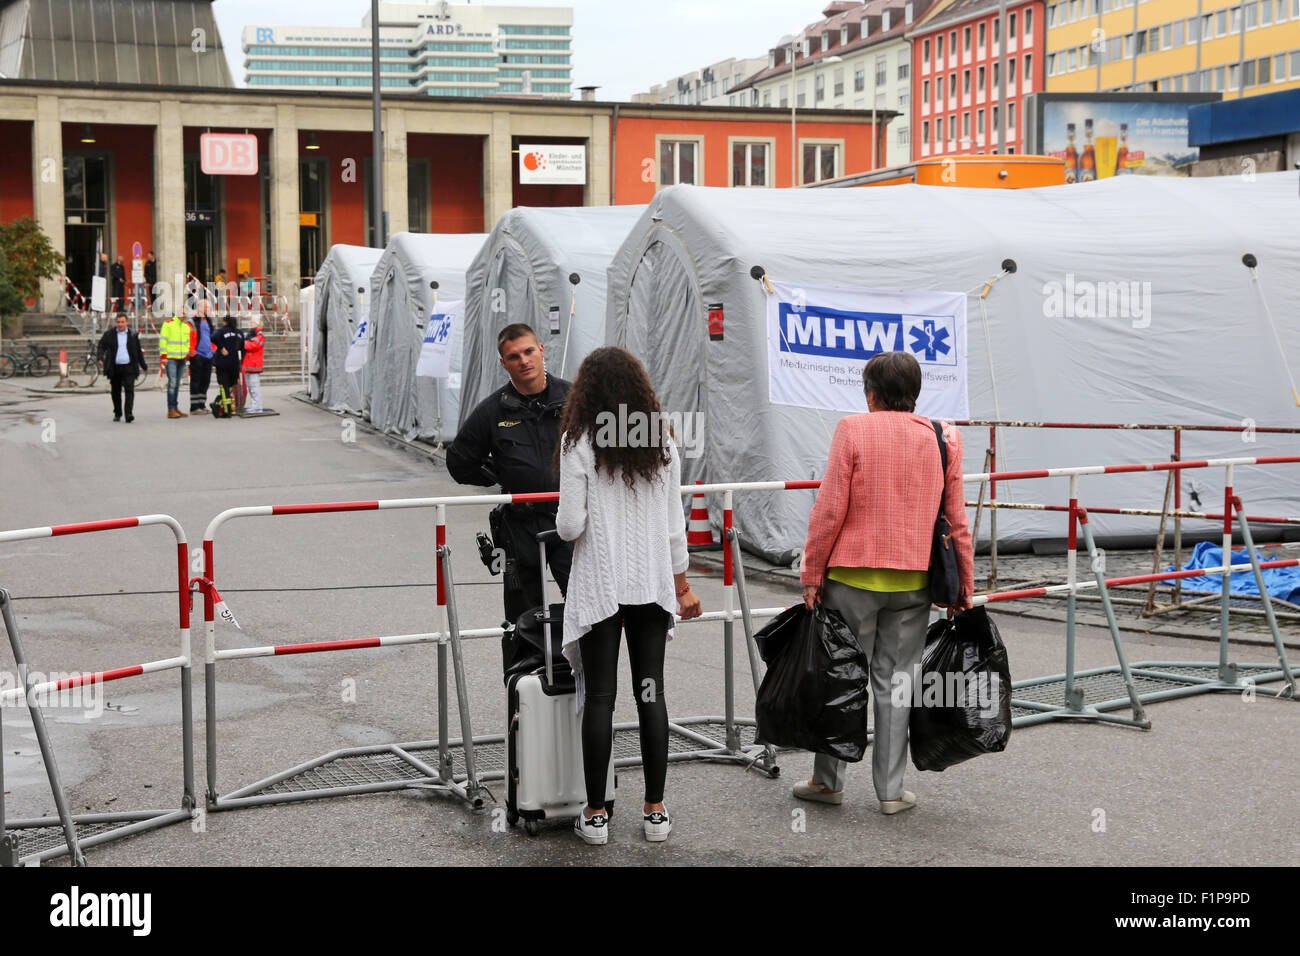 Tents for medical treatment of Migrants from Afghanistan who arrive with trains from Budapest/Hungary at Munich Hauptbahnhof main railway station in Munich, Germany. Thousands of migrants are traveling to Germany via Turkey, Greece, Montenegro, Serbia, Hungary and Austria. Stock Photo